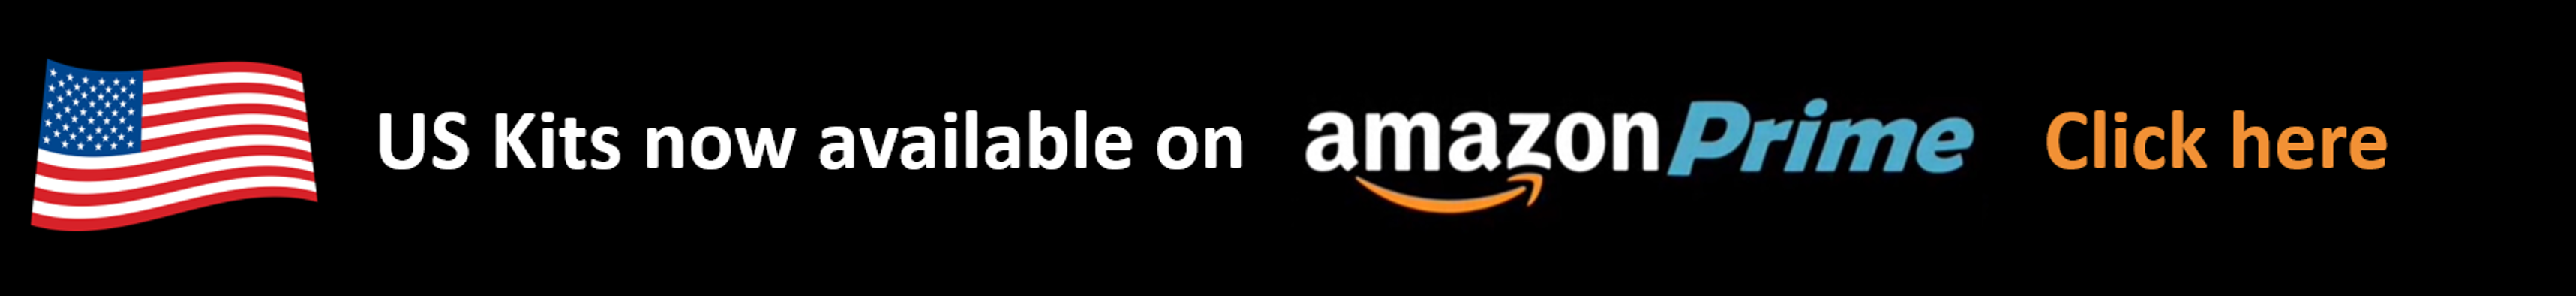 amazon-banner-for-website-bigger.png